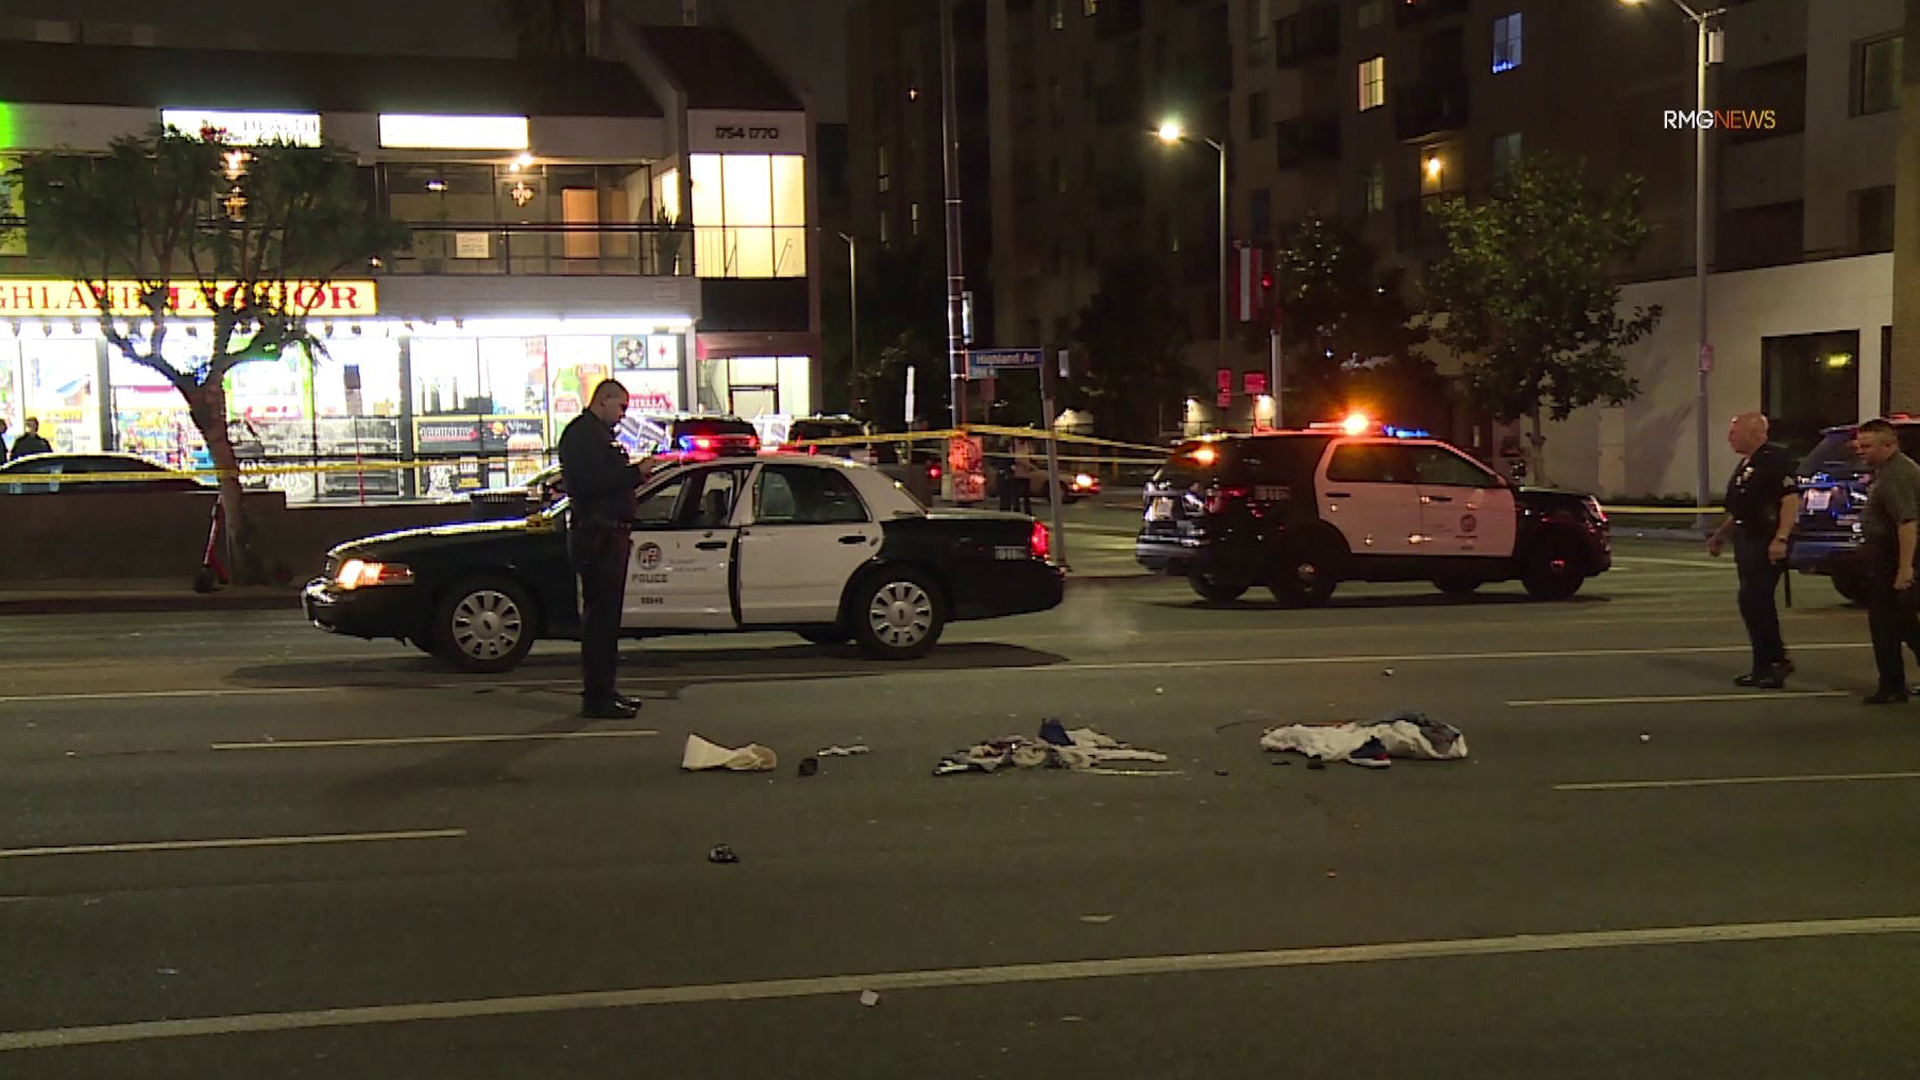 Police investigate a fatal shooting in Hollywood on March 2, 2020. (RMG News)